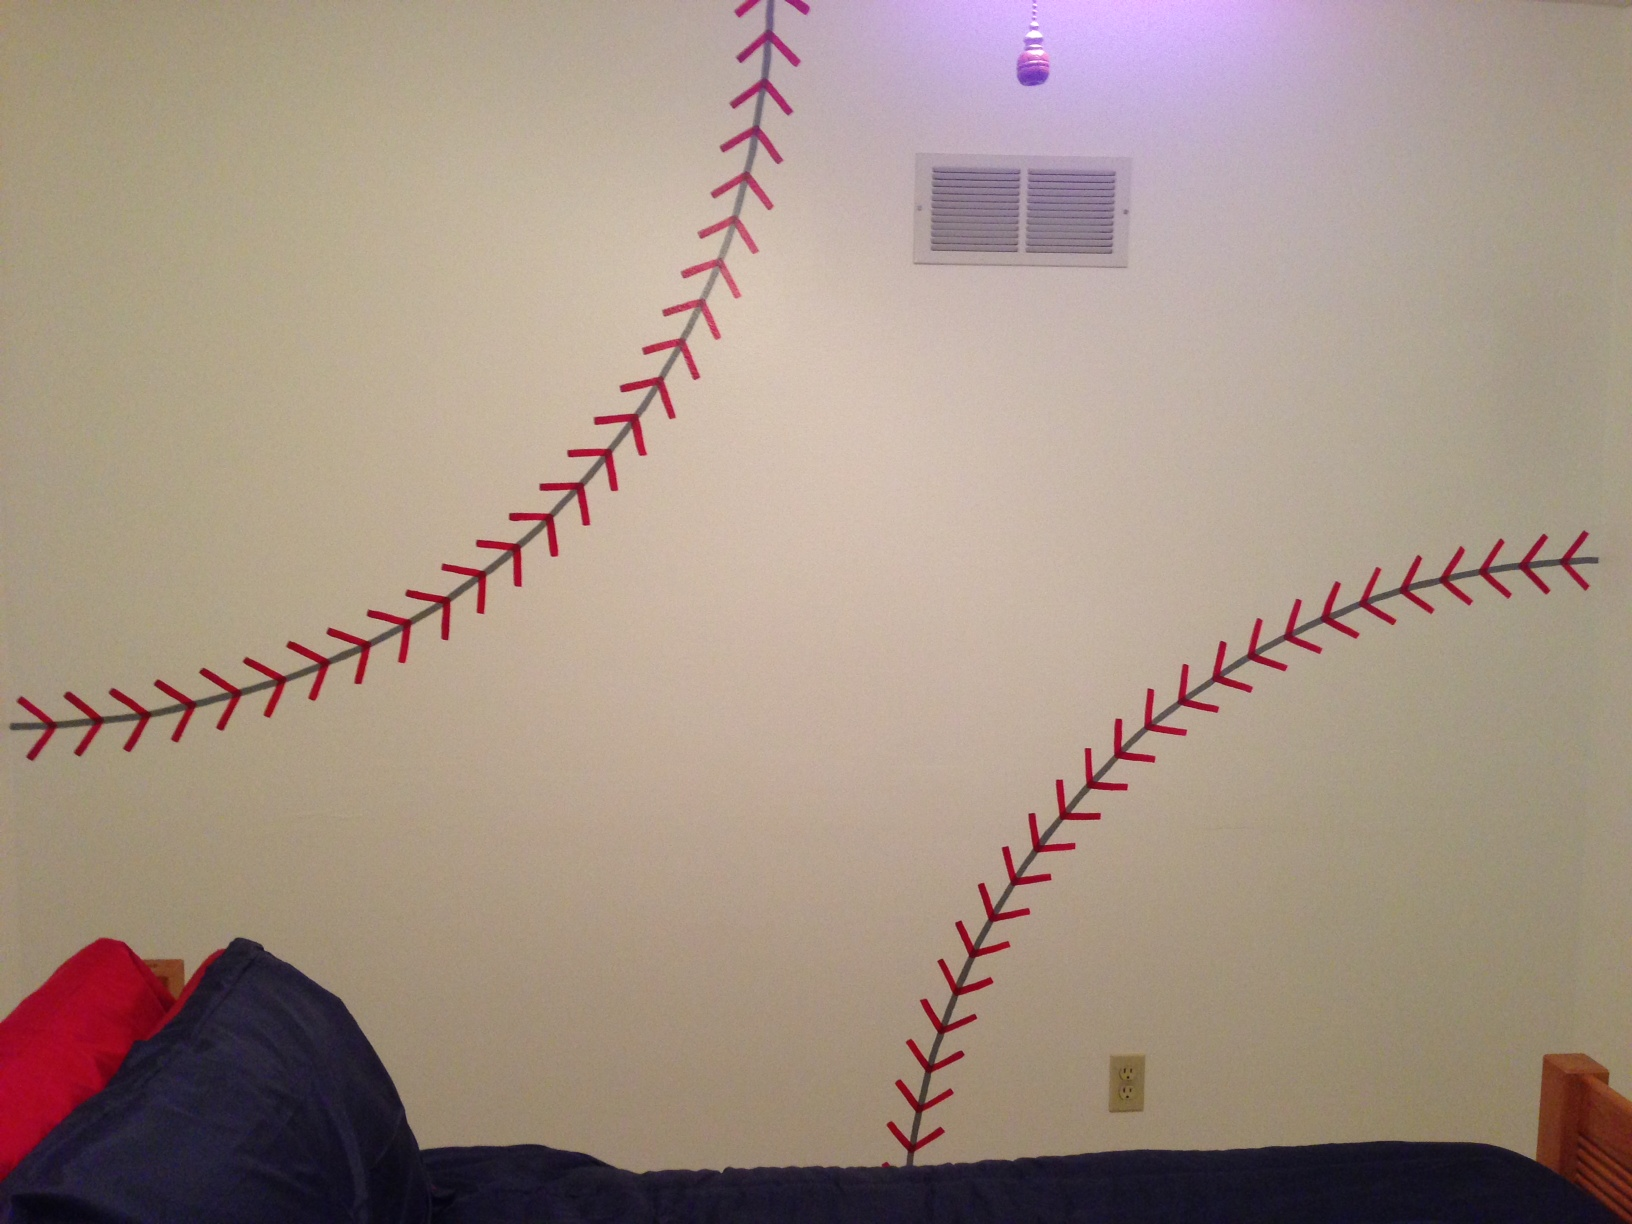 Baseball Stitches Wall Decal Murals Ideas Diy Painted Stitching Amipublicfo Images